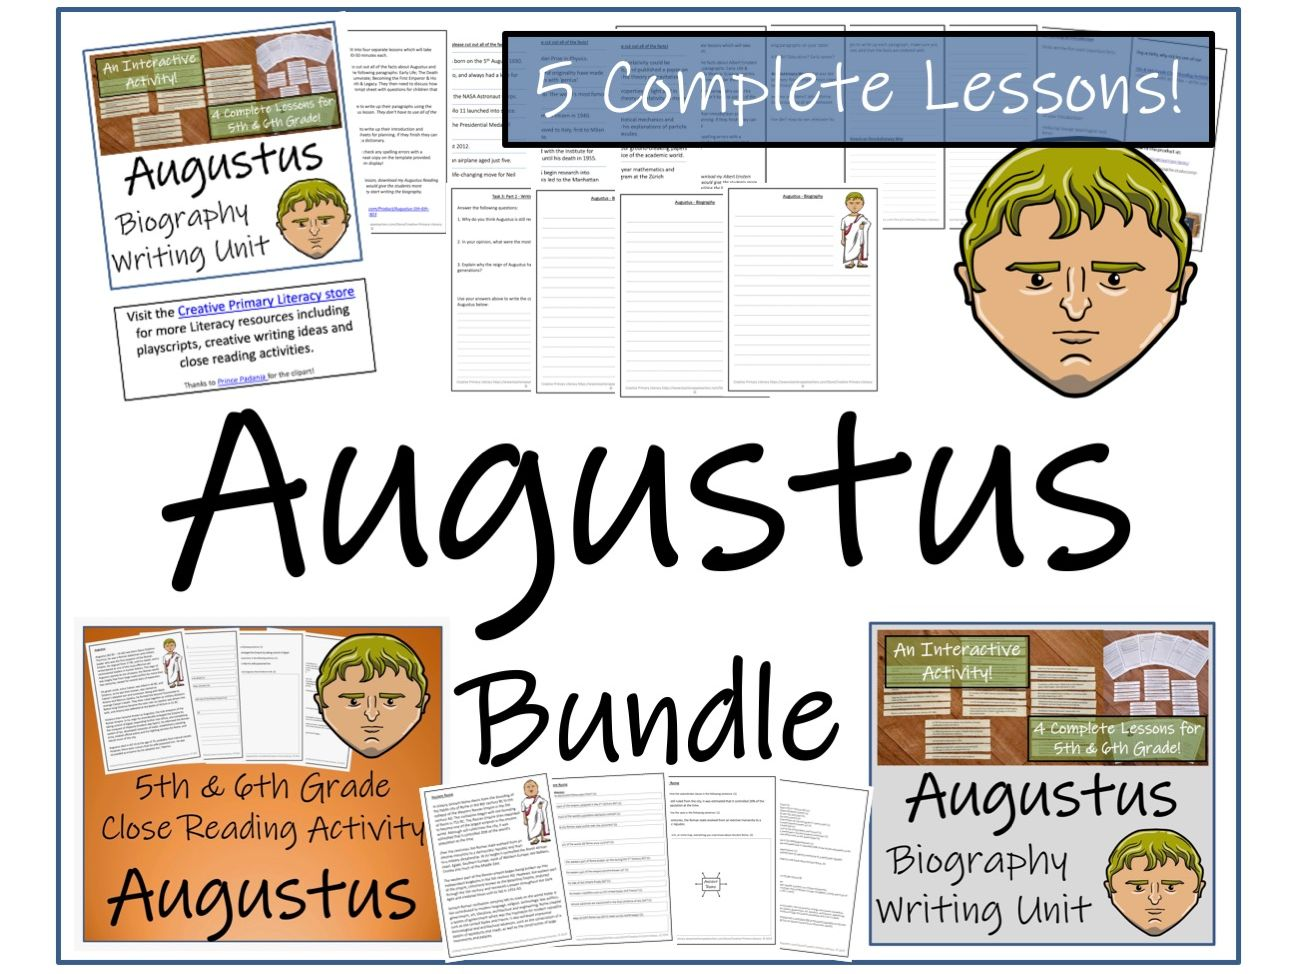 UKS2 History - Bundle of Activities about Augustus